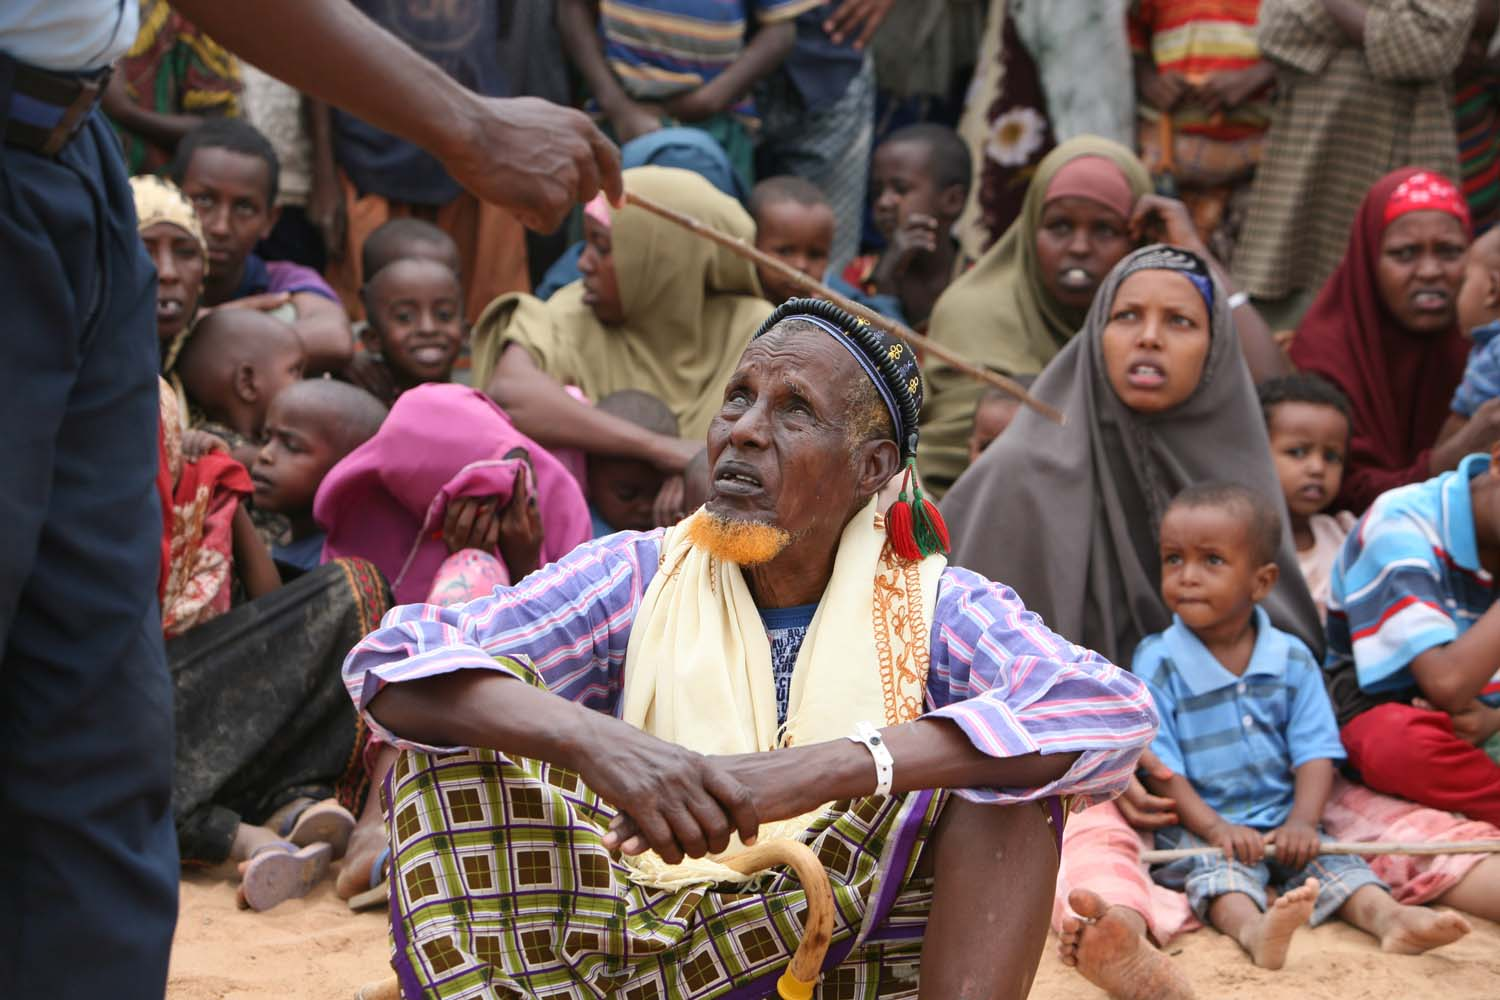 A group of newly arrived Somali refugees listens to instructions from a security officer in Dadaab, Kenya, October 2008. The conflict in Somalia has forced many people to seek refuge in northeastern Kenya.